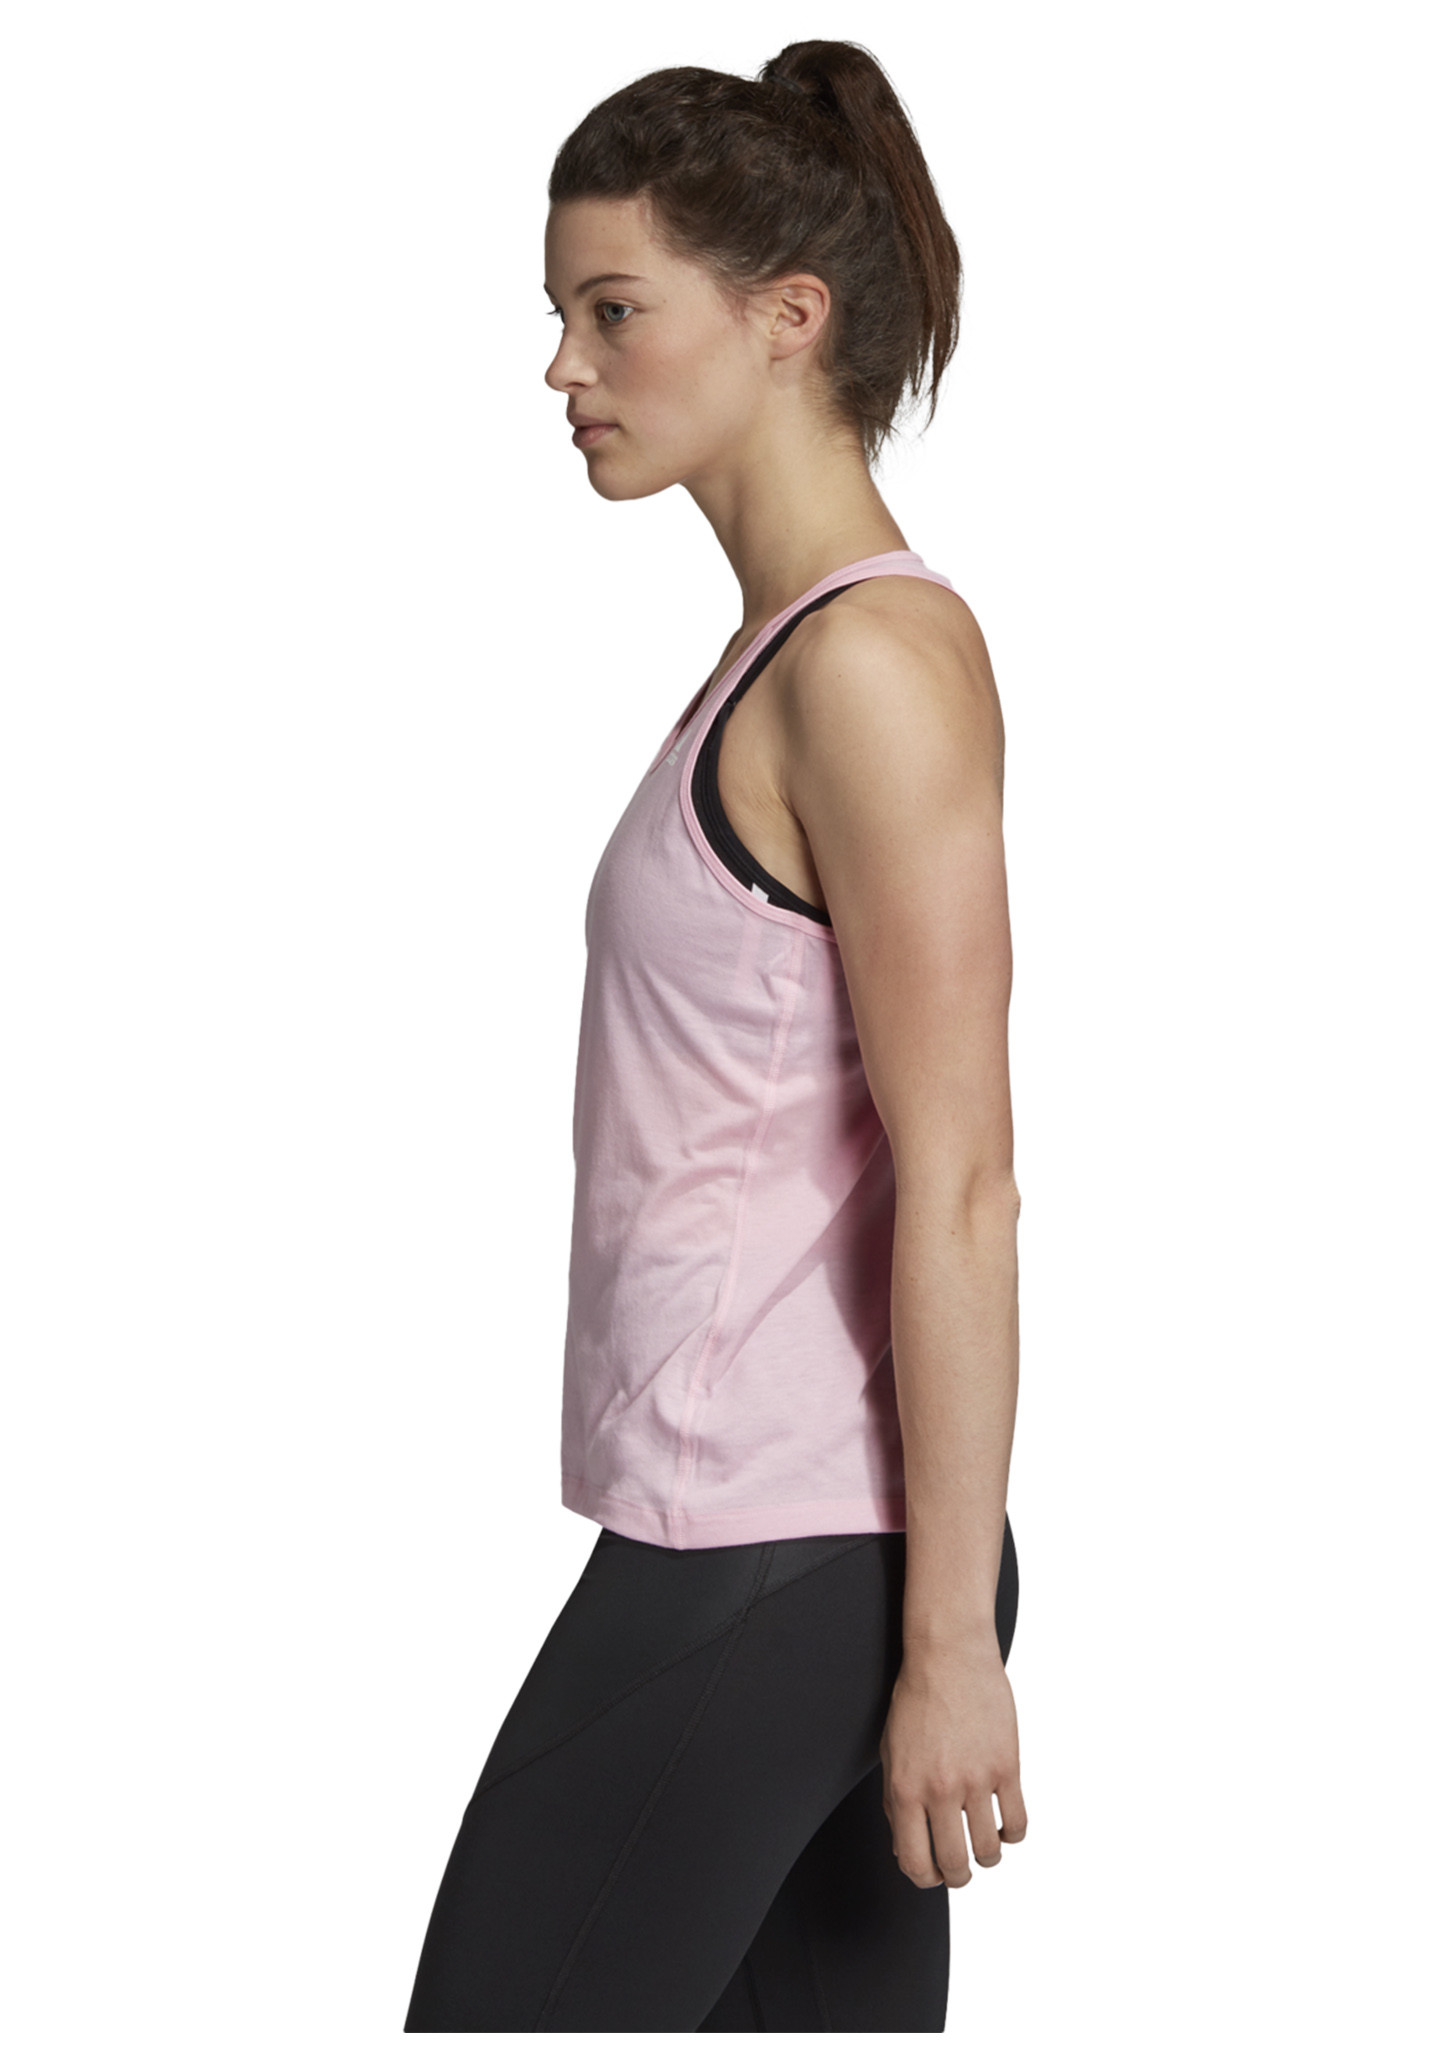 a479e4c2fec adidas Prime 3-Stripes Tank Top - Running tops for Women - Pink | 21RUN